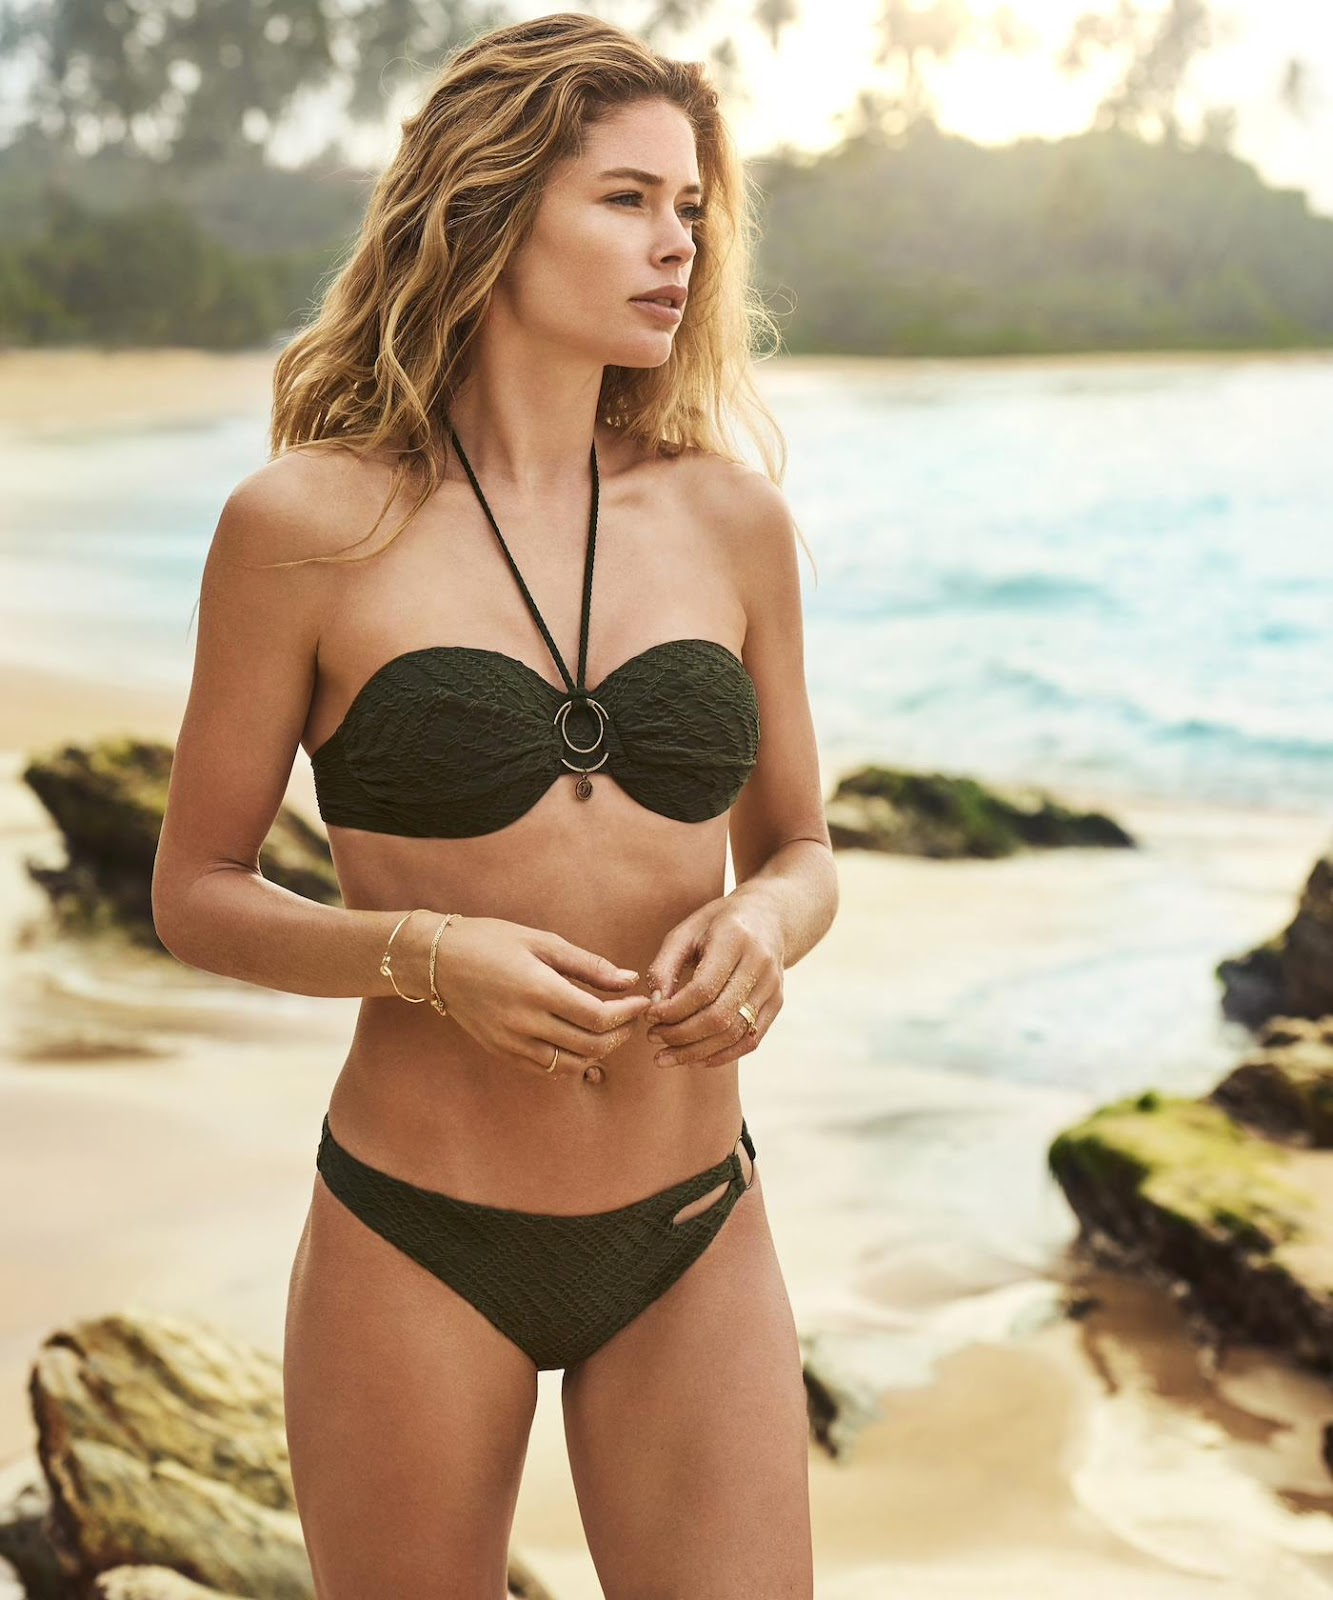 Hunkemöller Swimsuit 2018 Ad Campaign ft. Doutzen Kroes